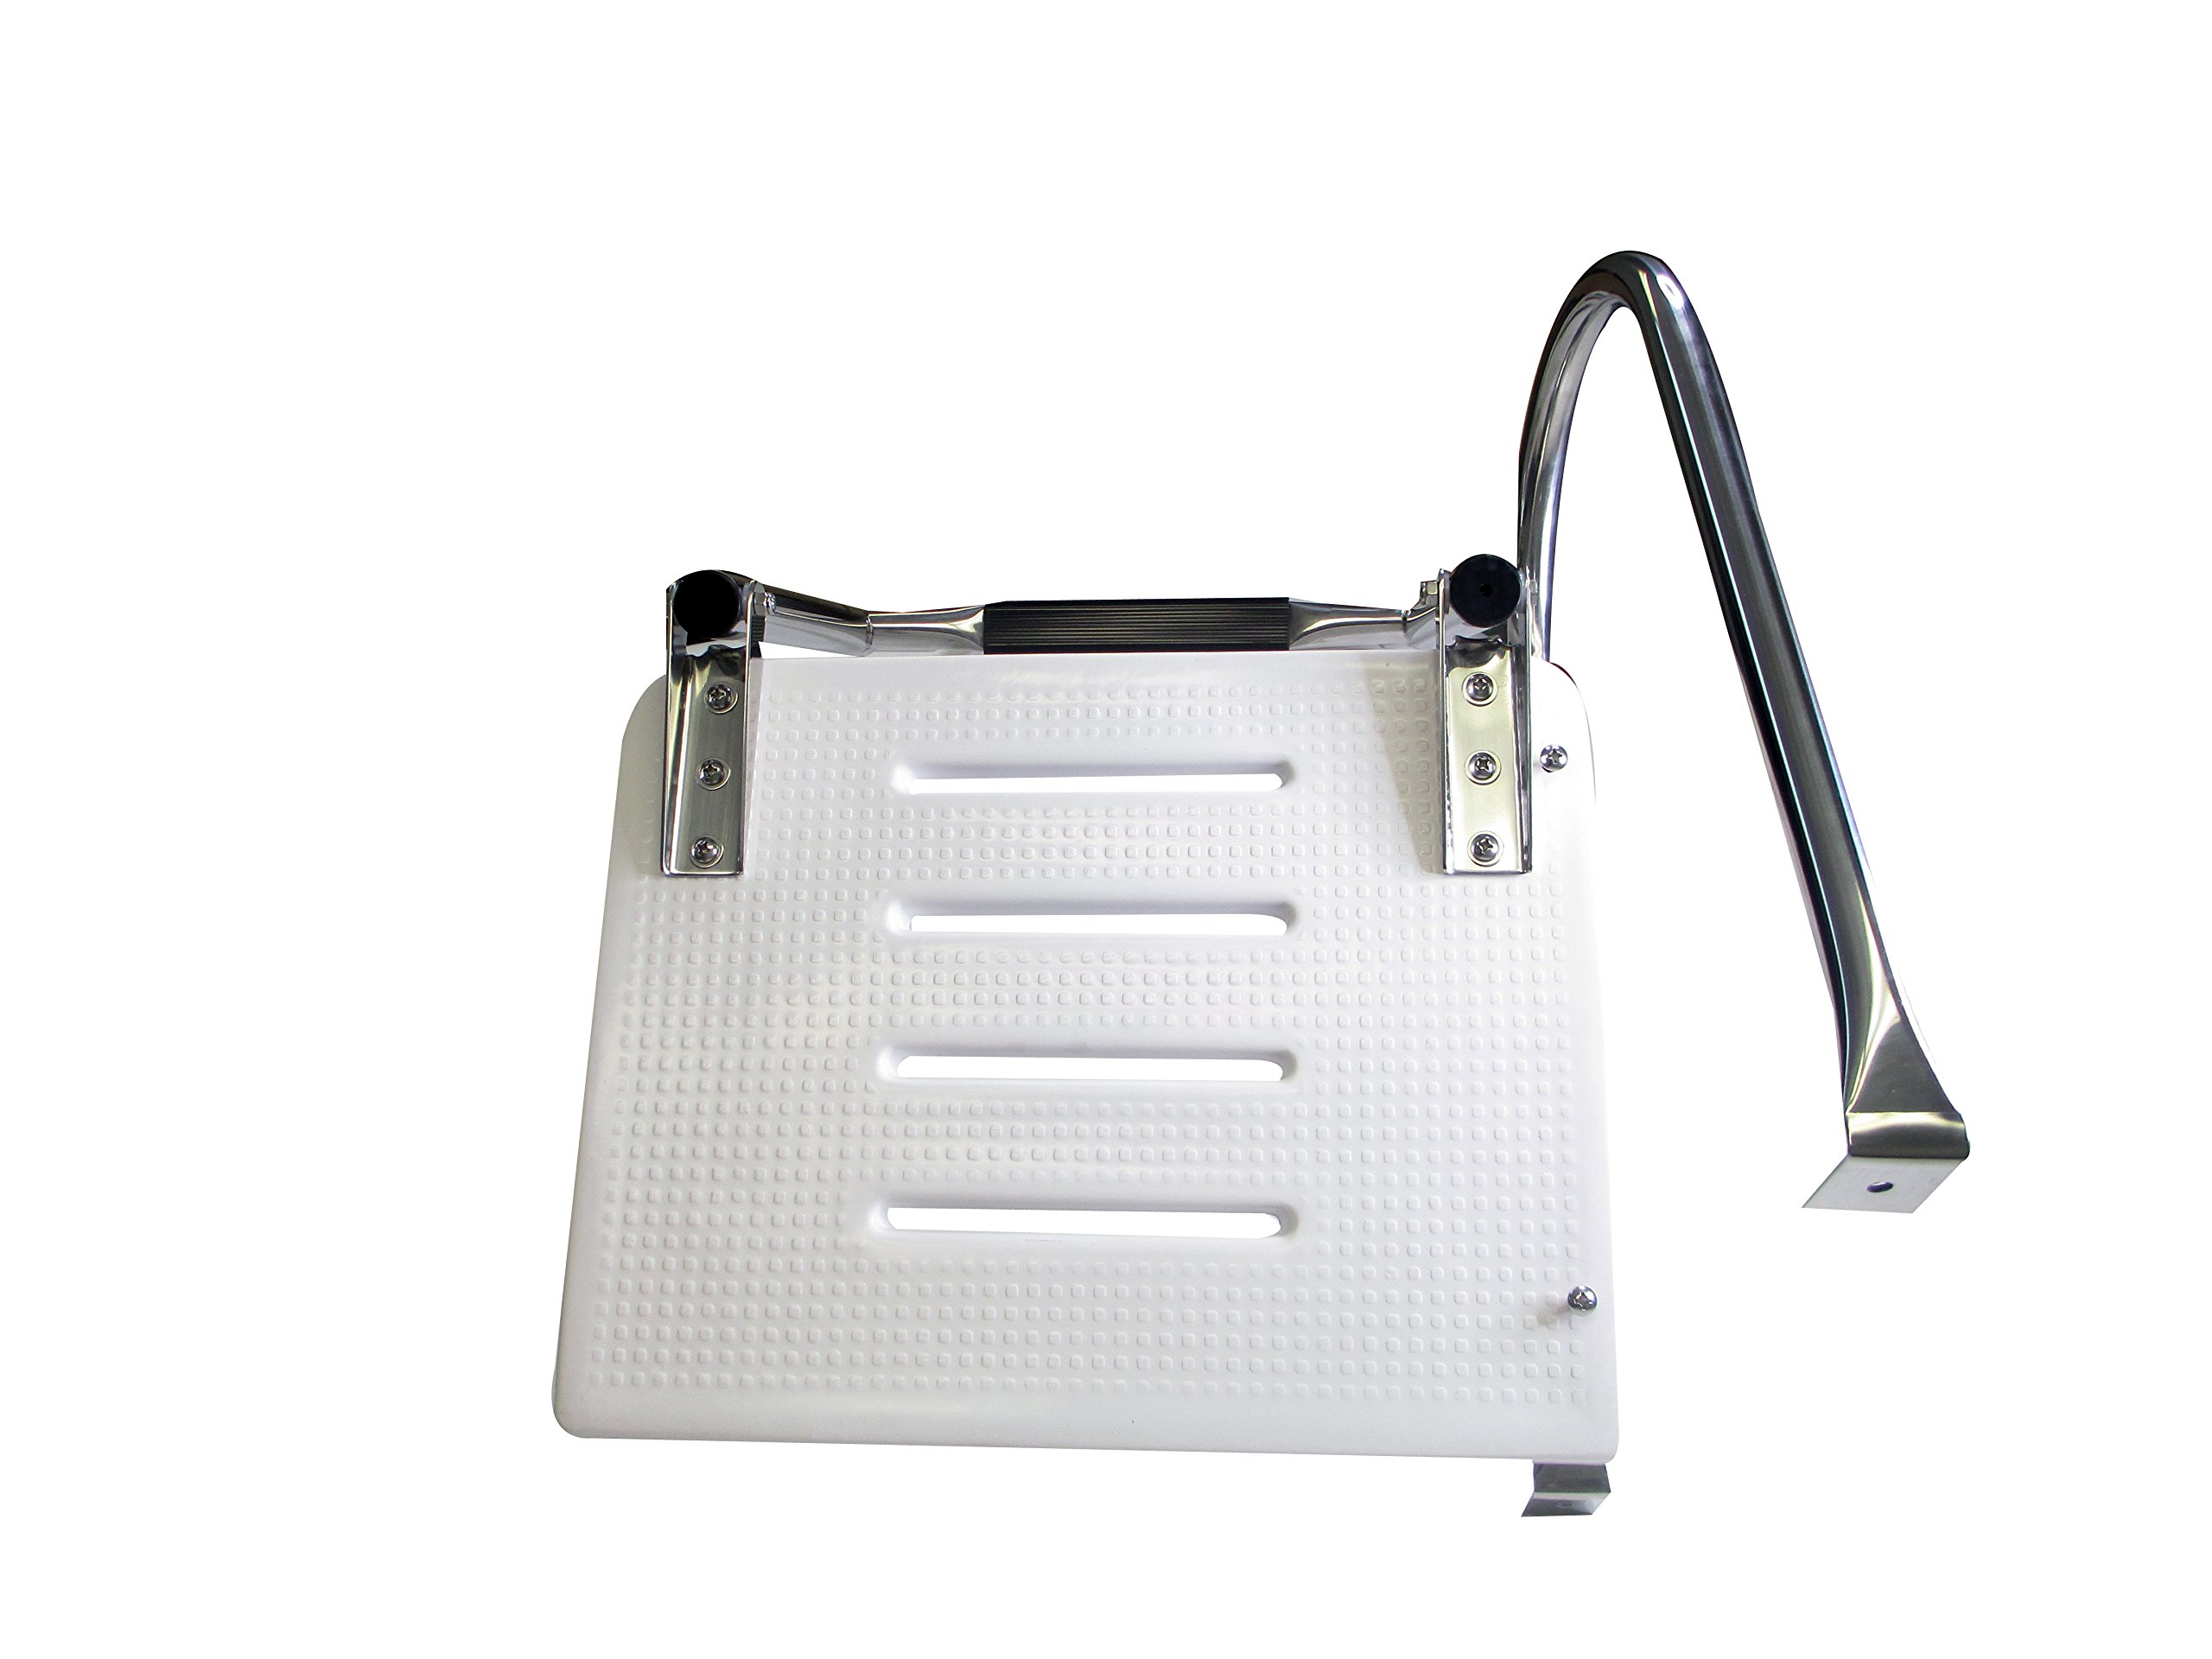 Pactrade Marine Boat Universal Swim Over Platform Mount Telescopic Ladder, 3 Step in/Outboard One Rail